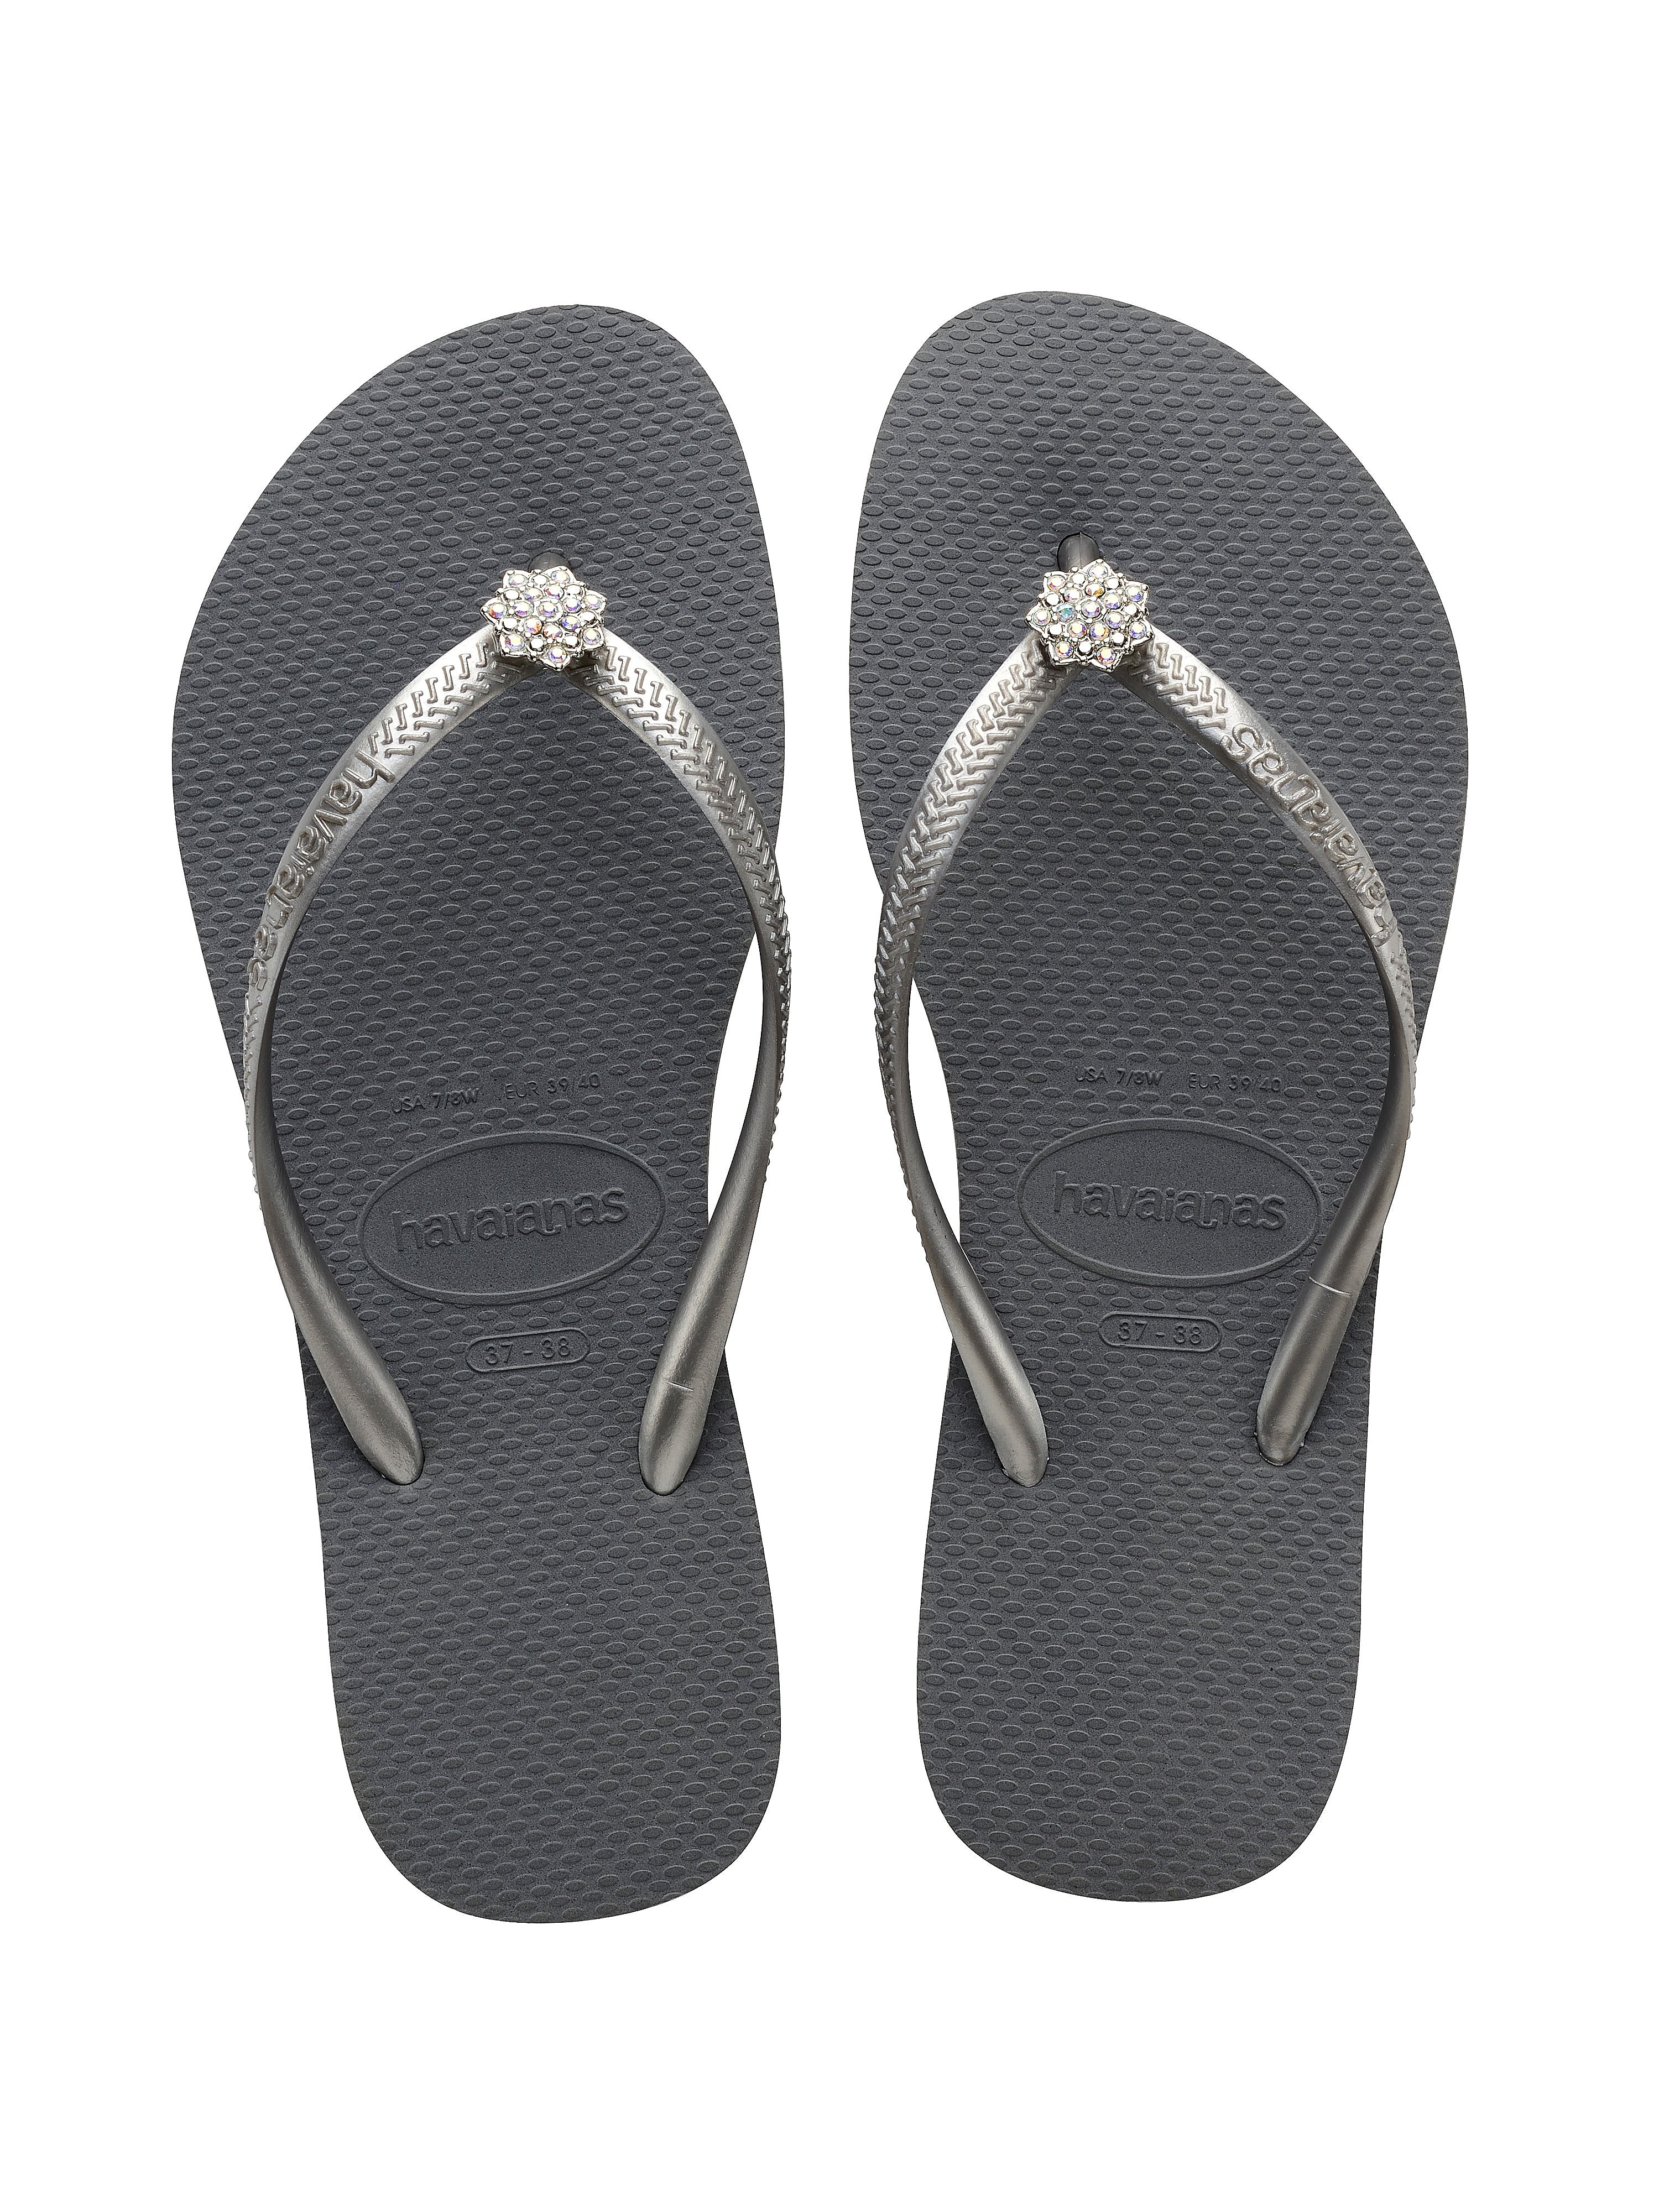 Havaianas Women's Slim Crystal Poem Flip Flops - Steel Grey